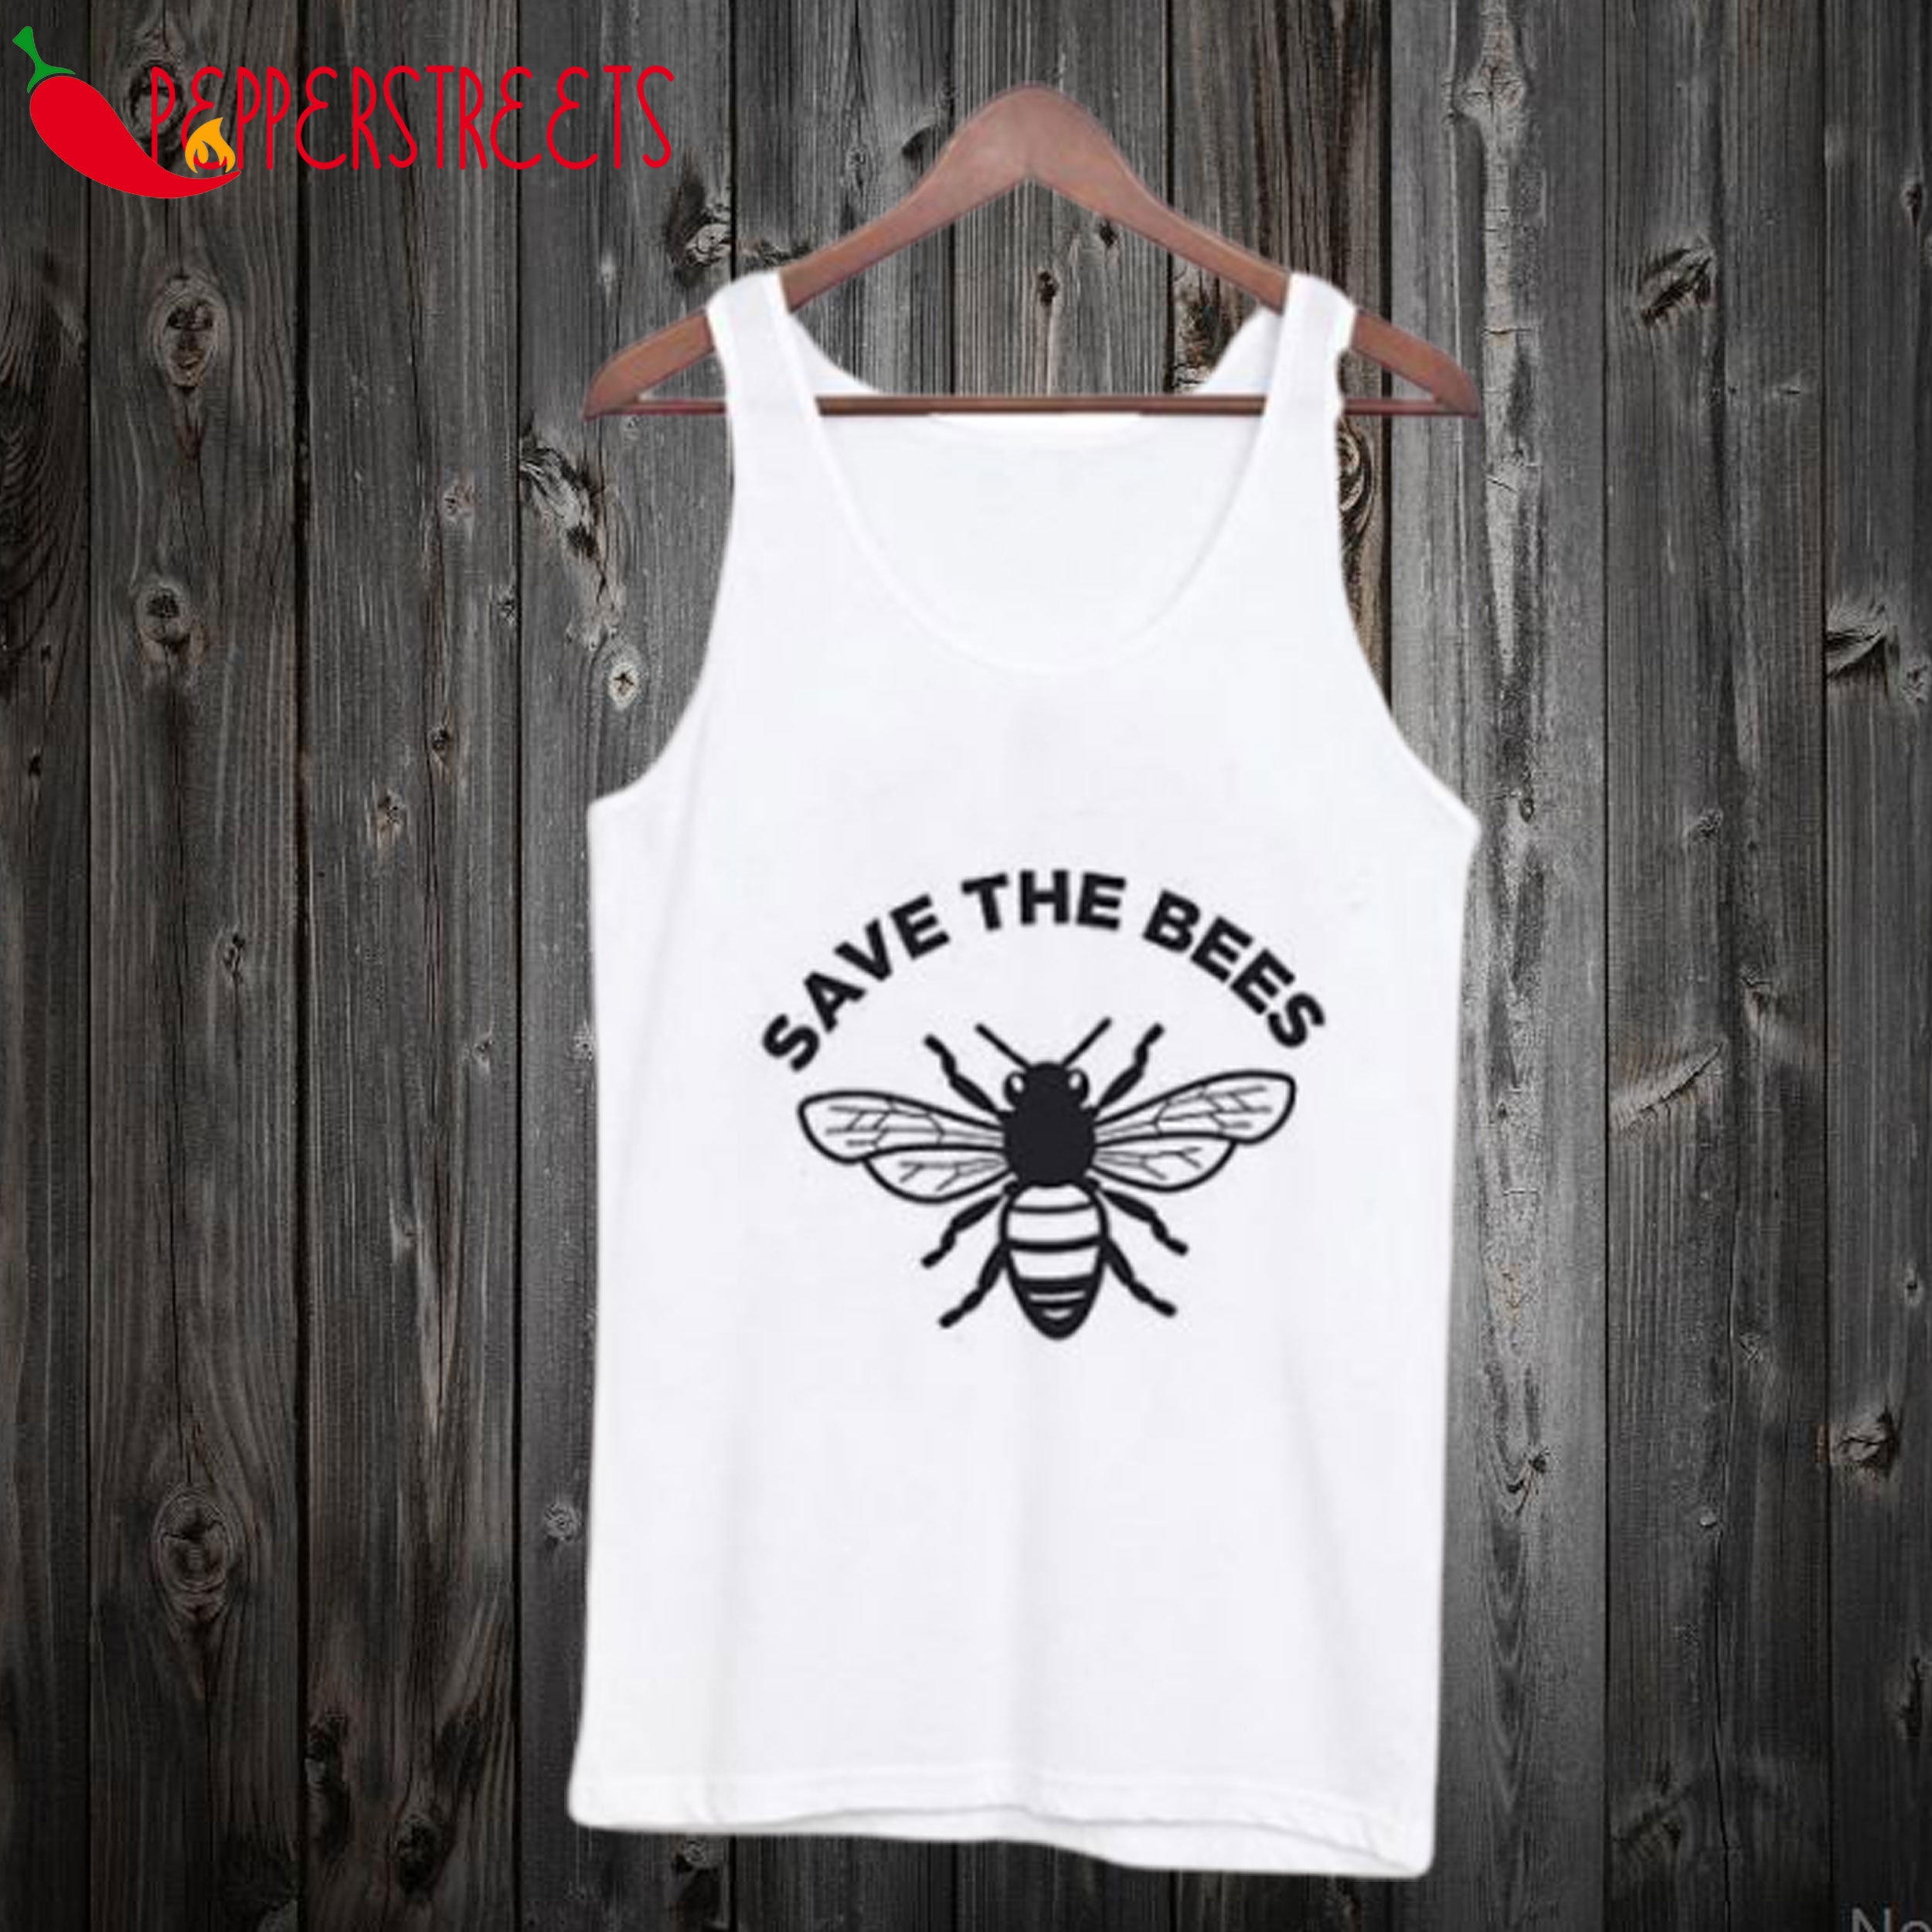 Save The Bees Festival Tank Top